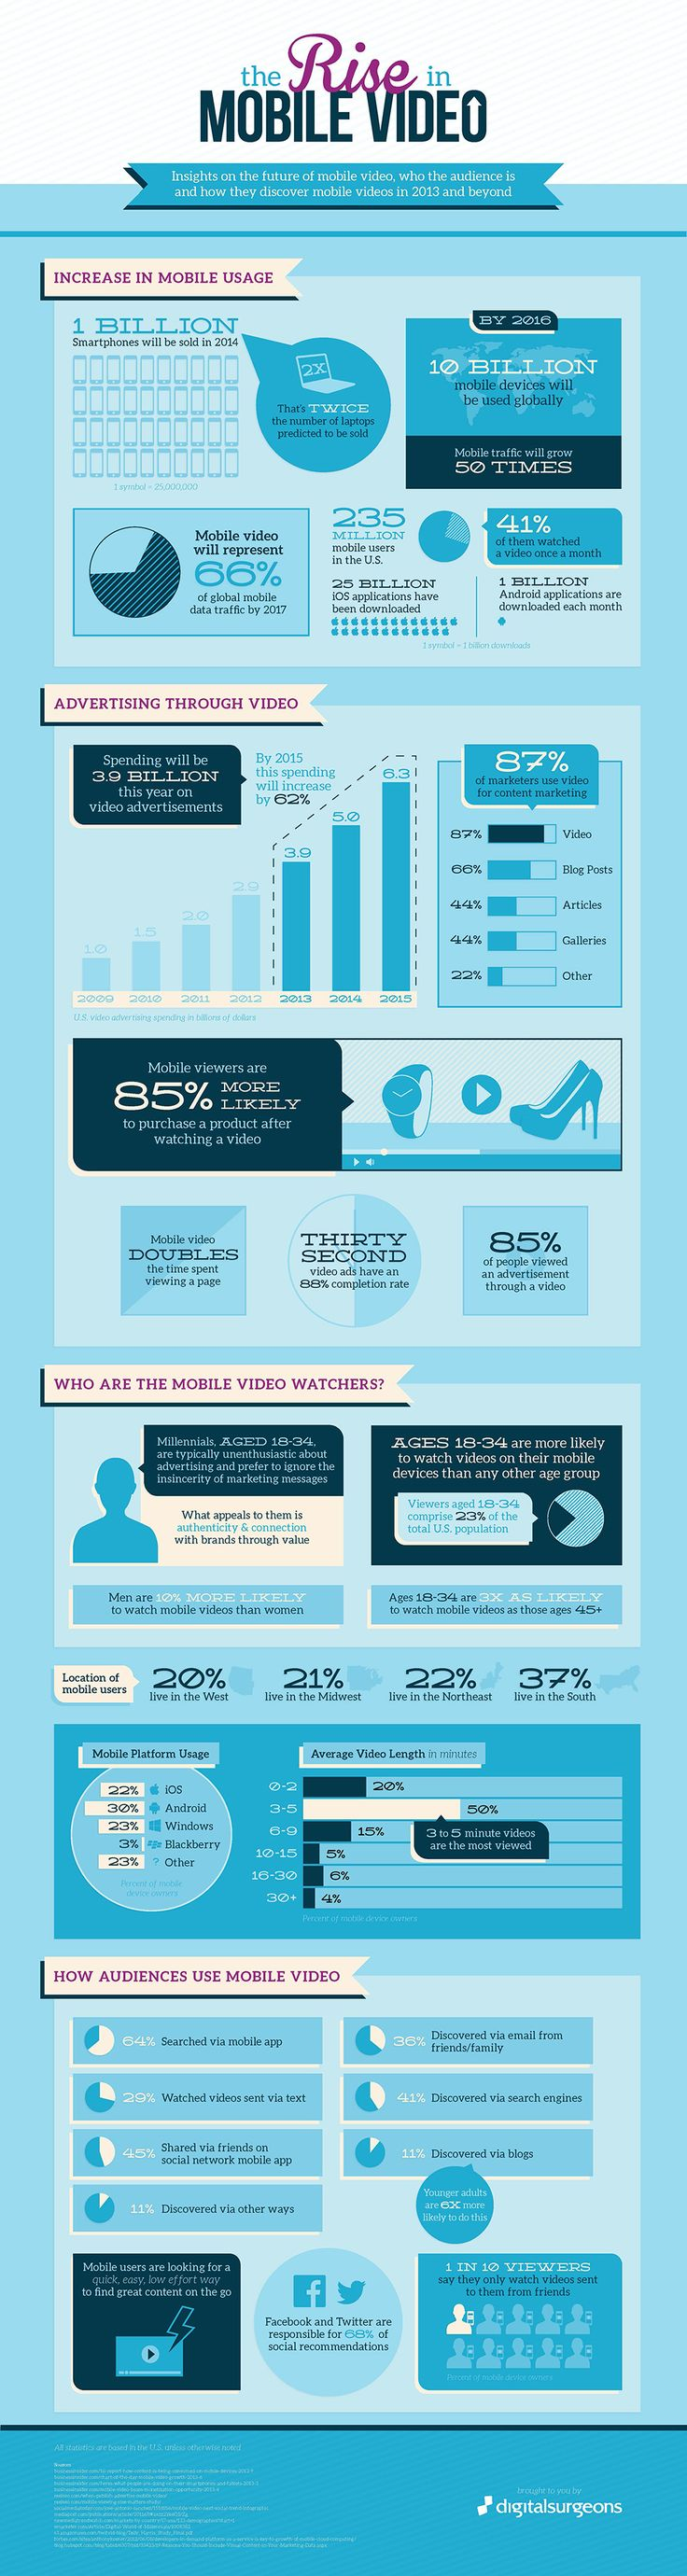 """""""The Rise in Mobile Video [Infographic],"""" by Digital Surgeons"""